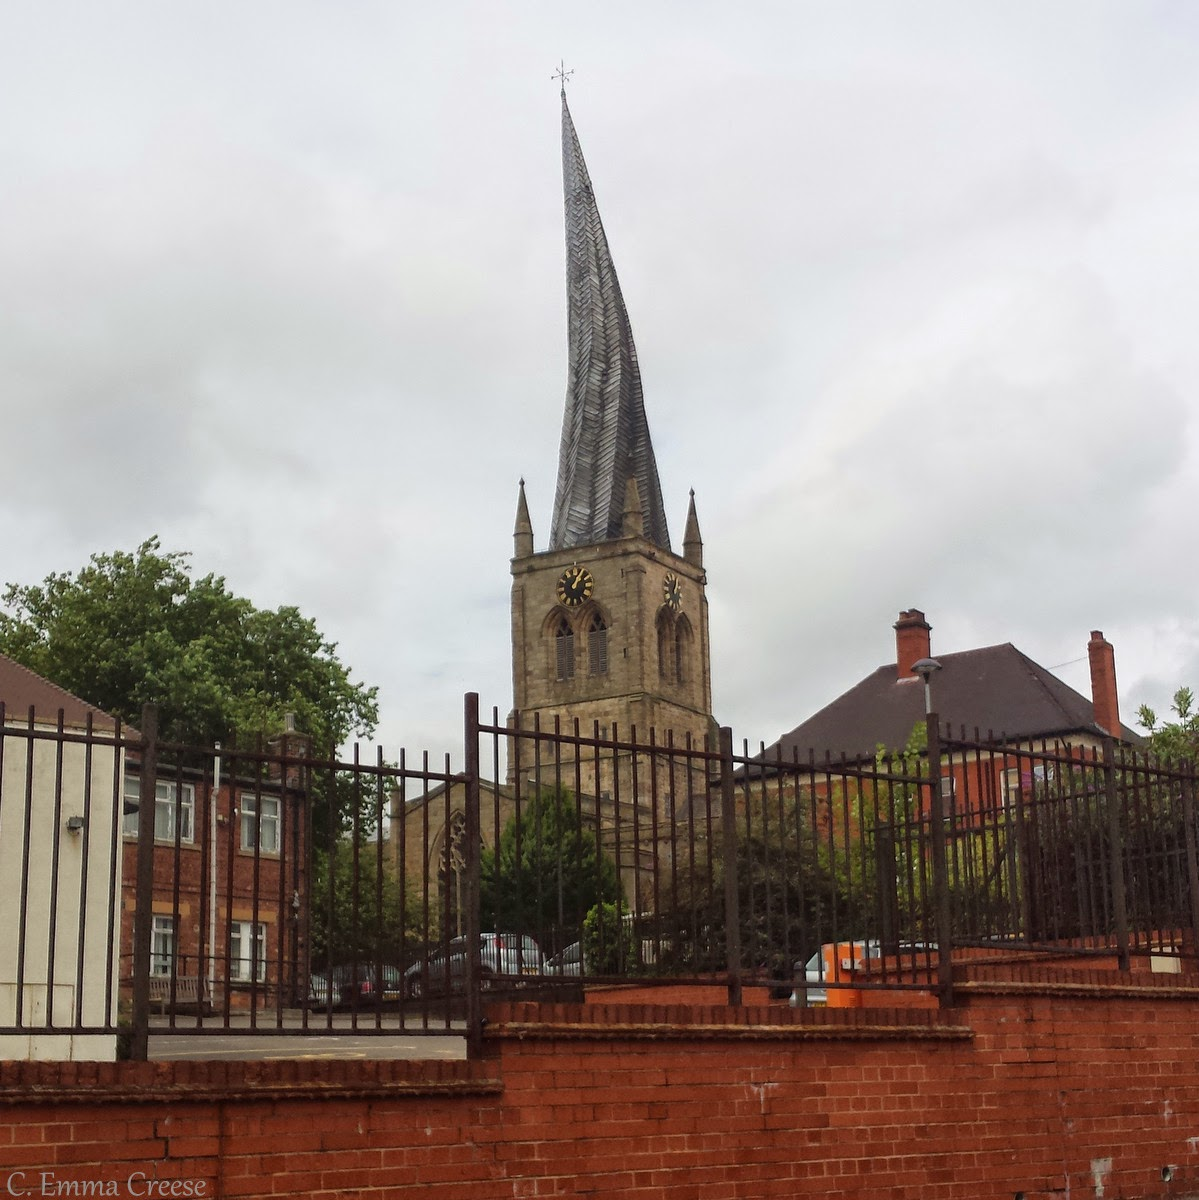 Staycation-Chesterfield-Crooked-Spire-Travel